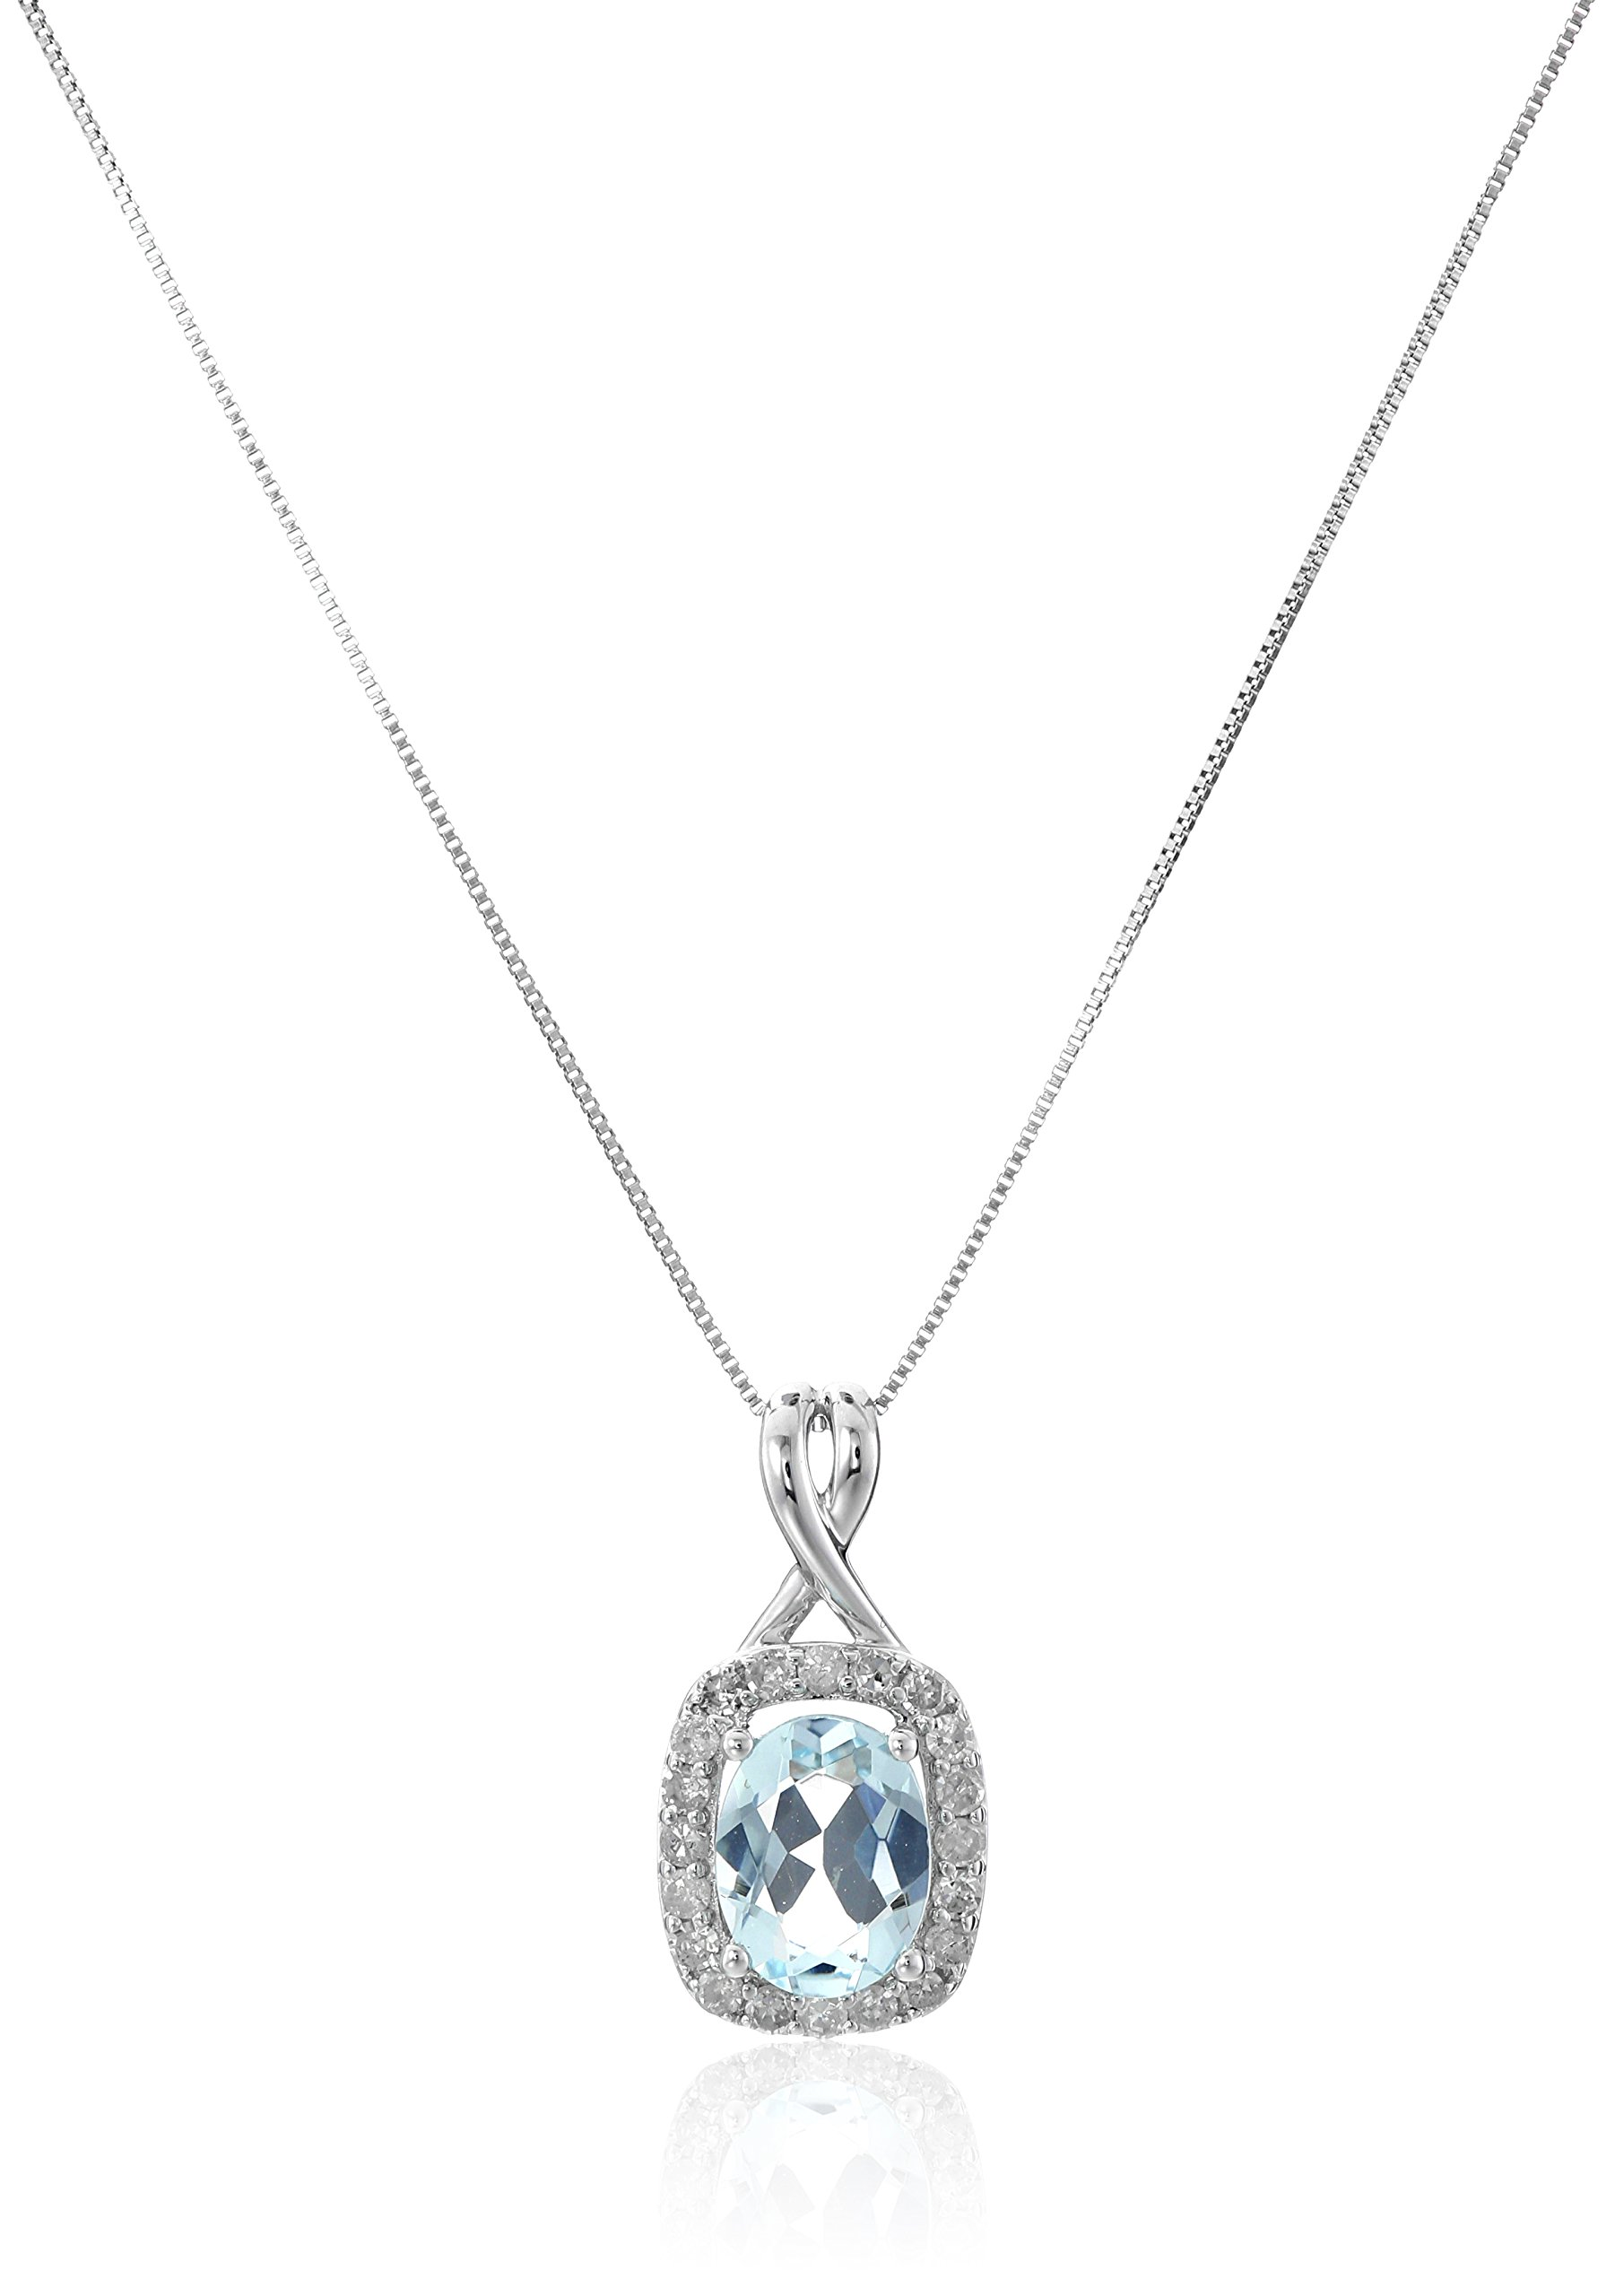 14k White Gold Aquamarine and Diamond (1/4 cttw, H-I Color, I2-I3 Clarity) Twisted Pendant Necklace, 18''